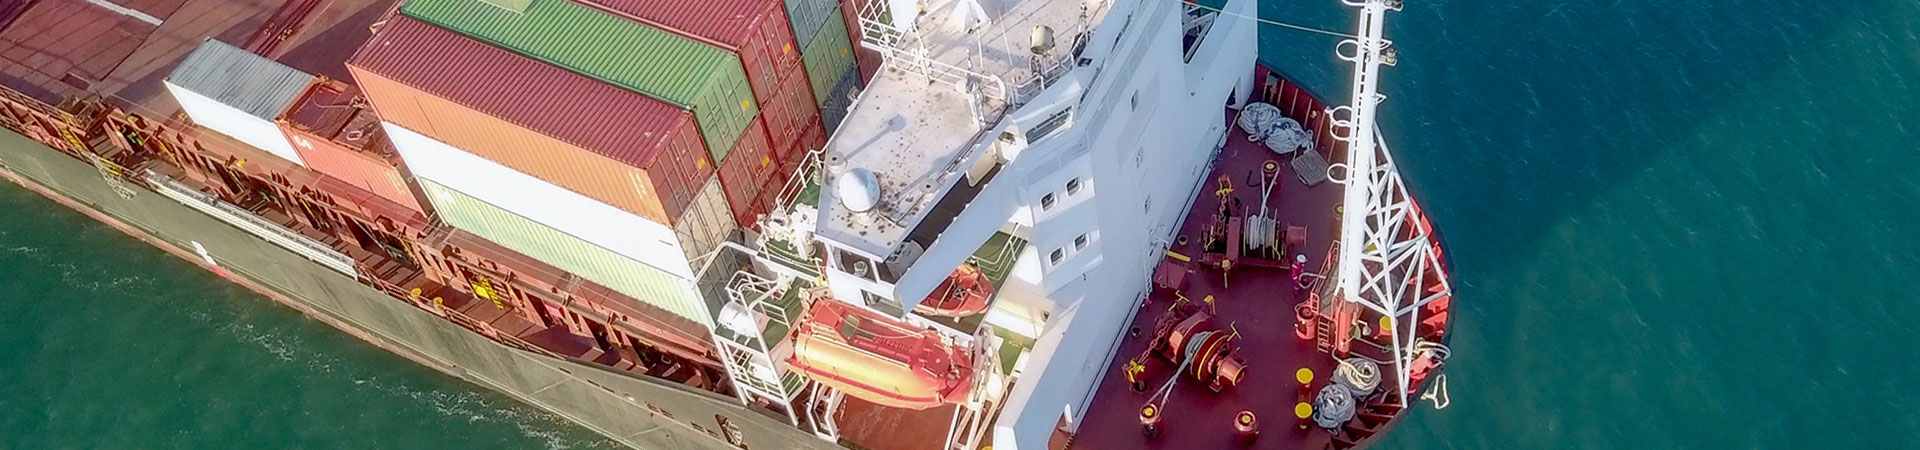 Large Cargo and RoRo (Roll On-Off) ship at sea, loaded with a small amount of shipping containers